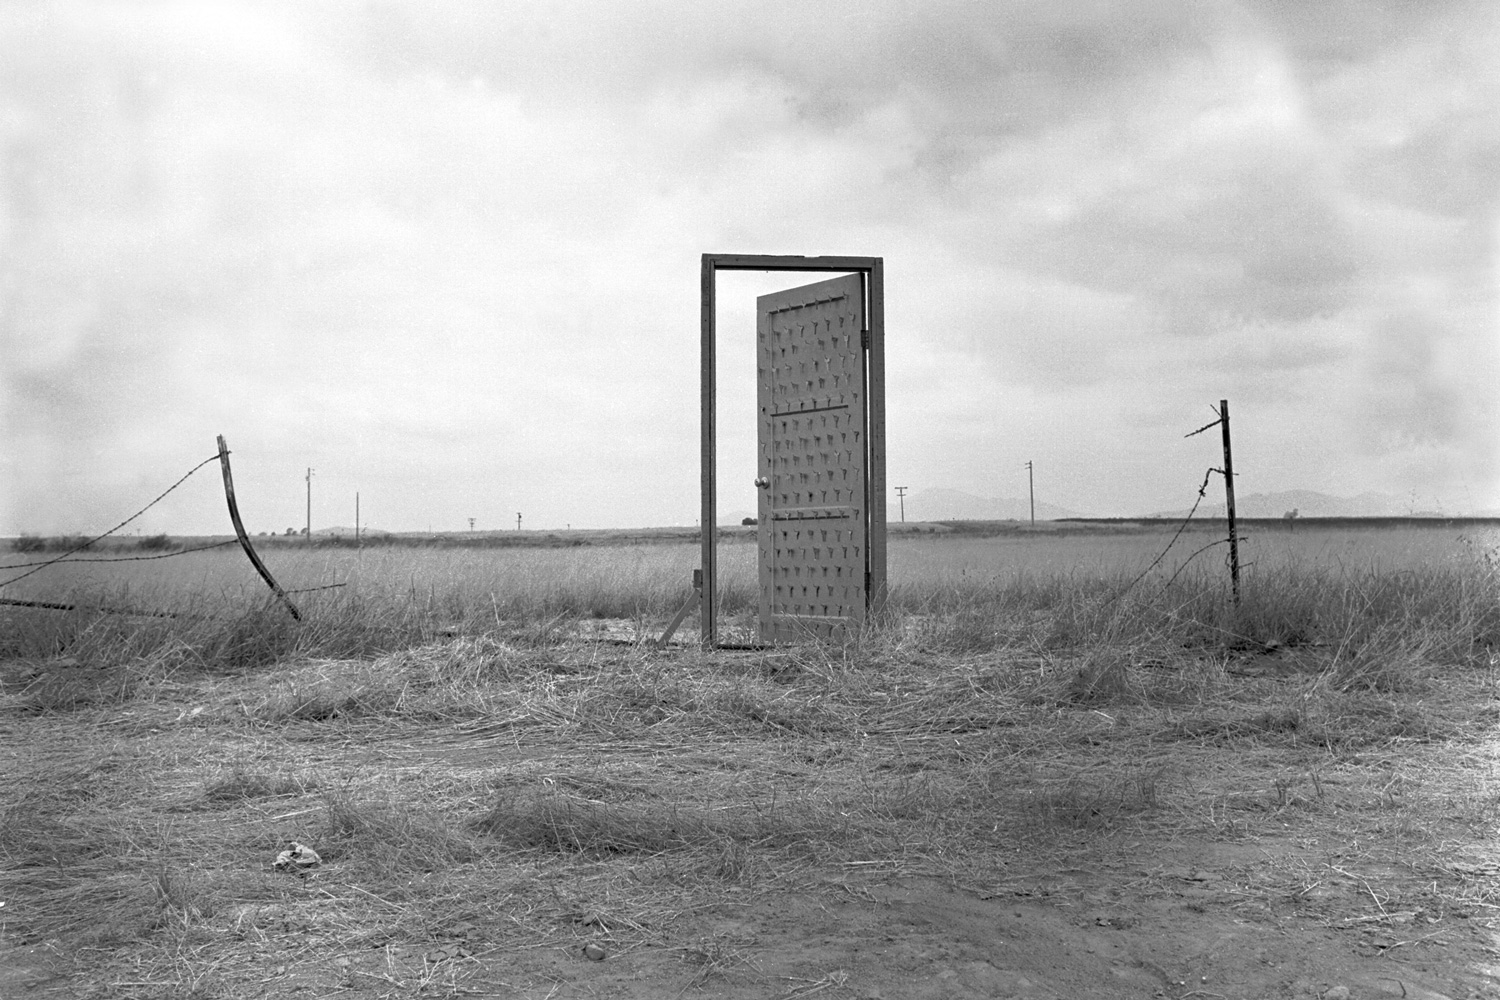 on the edge edward abbey charles ives and the outlaws on border door by richard lou an art installation created in 1988 on the u s border near tijuana after installing the workable standing gold